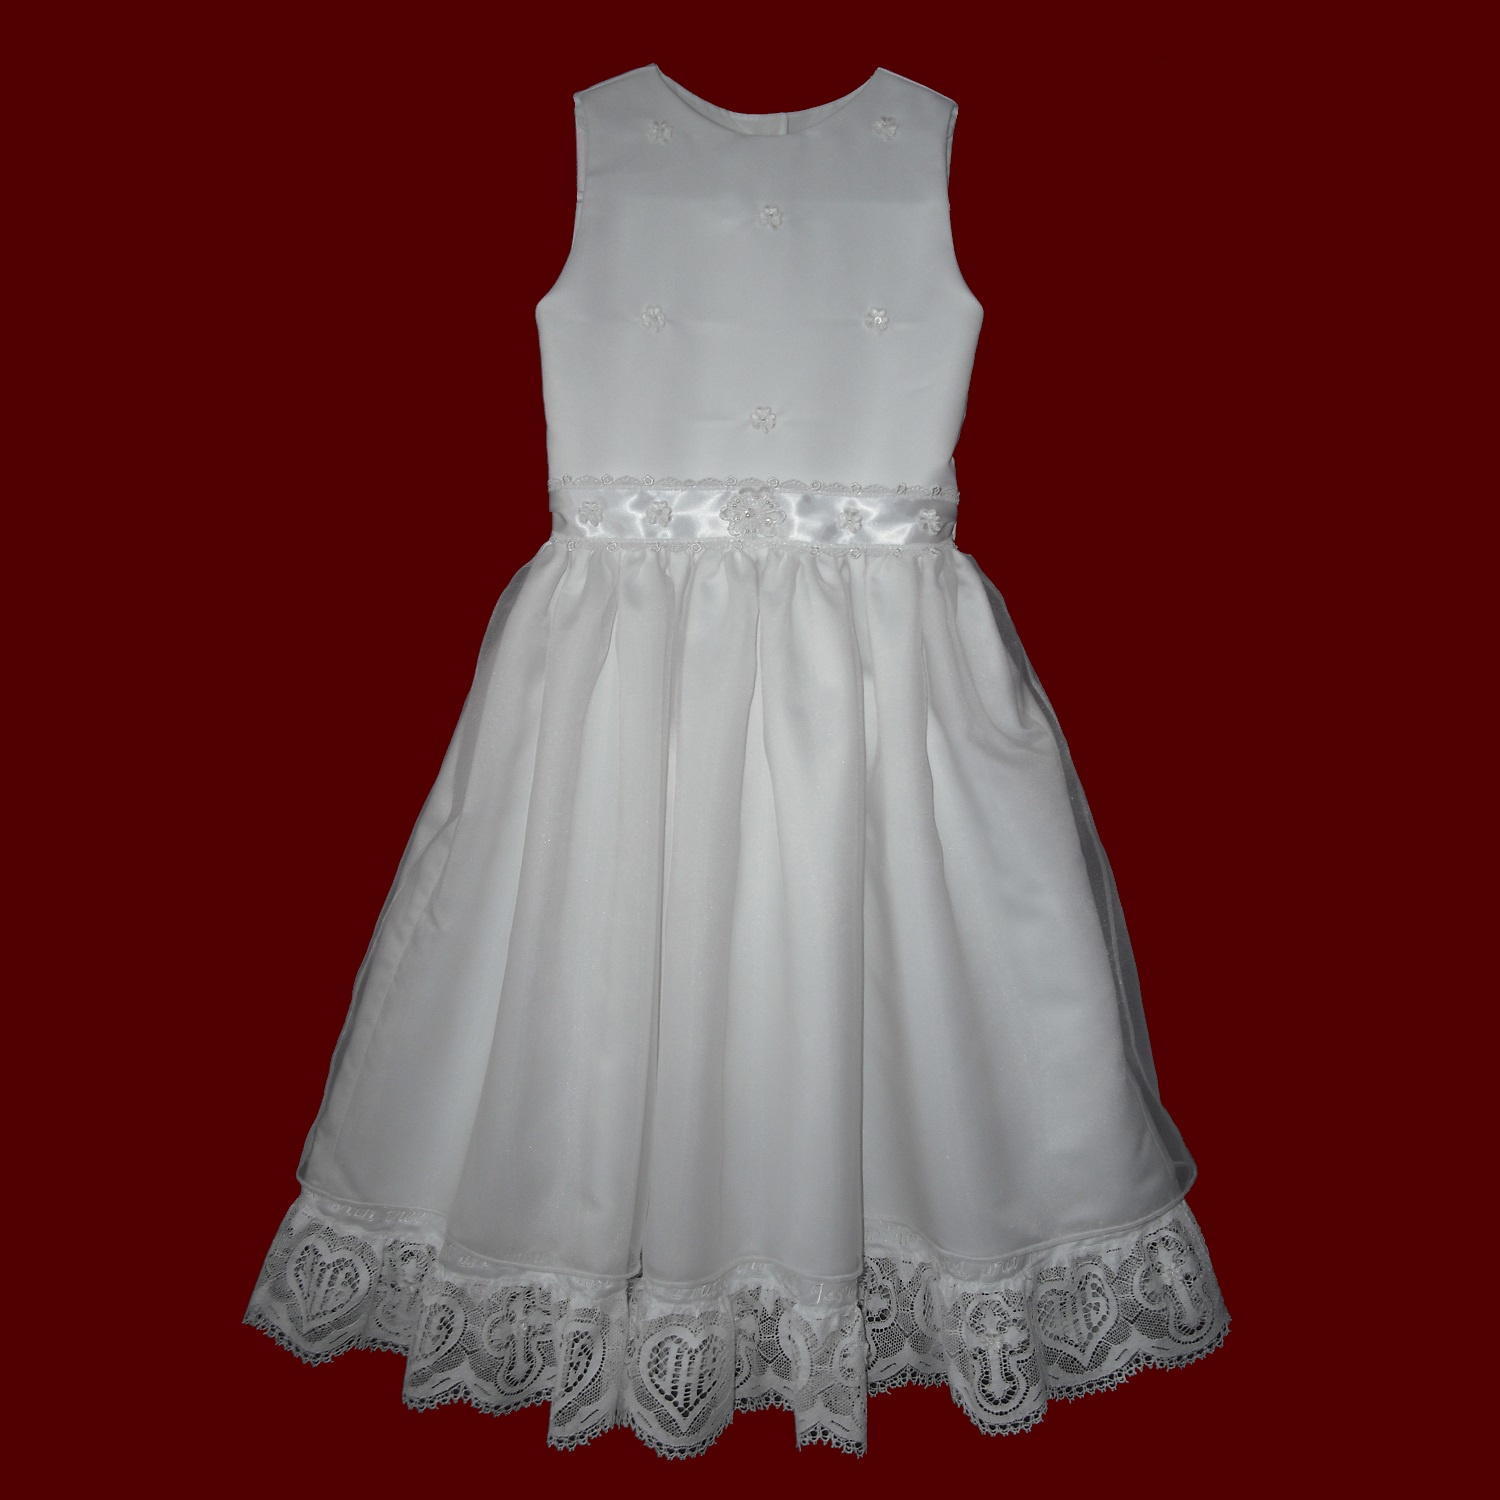 Embroidered Hail Mary Satin & Organza Communion Dress With Cross & Heart Lace